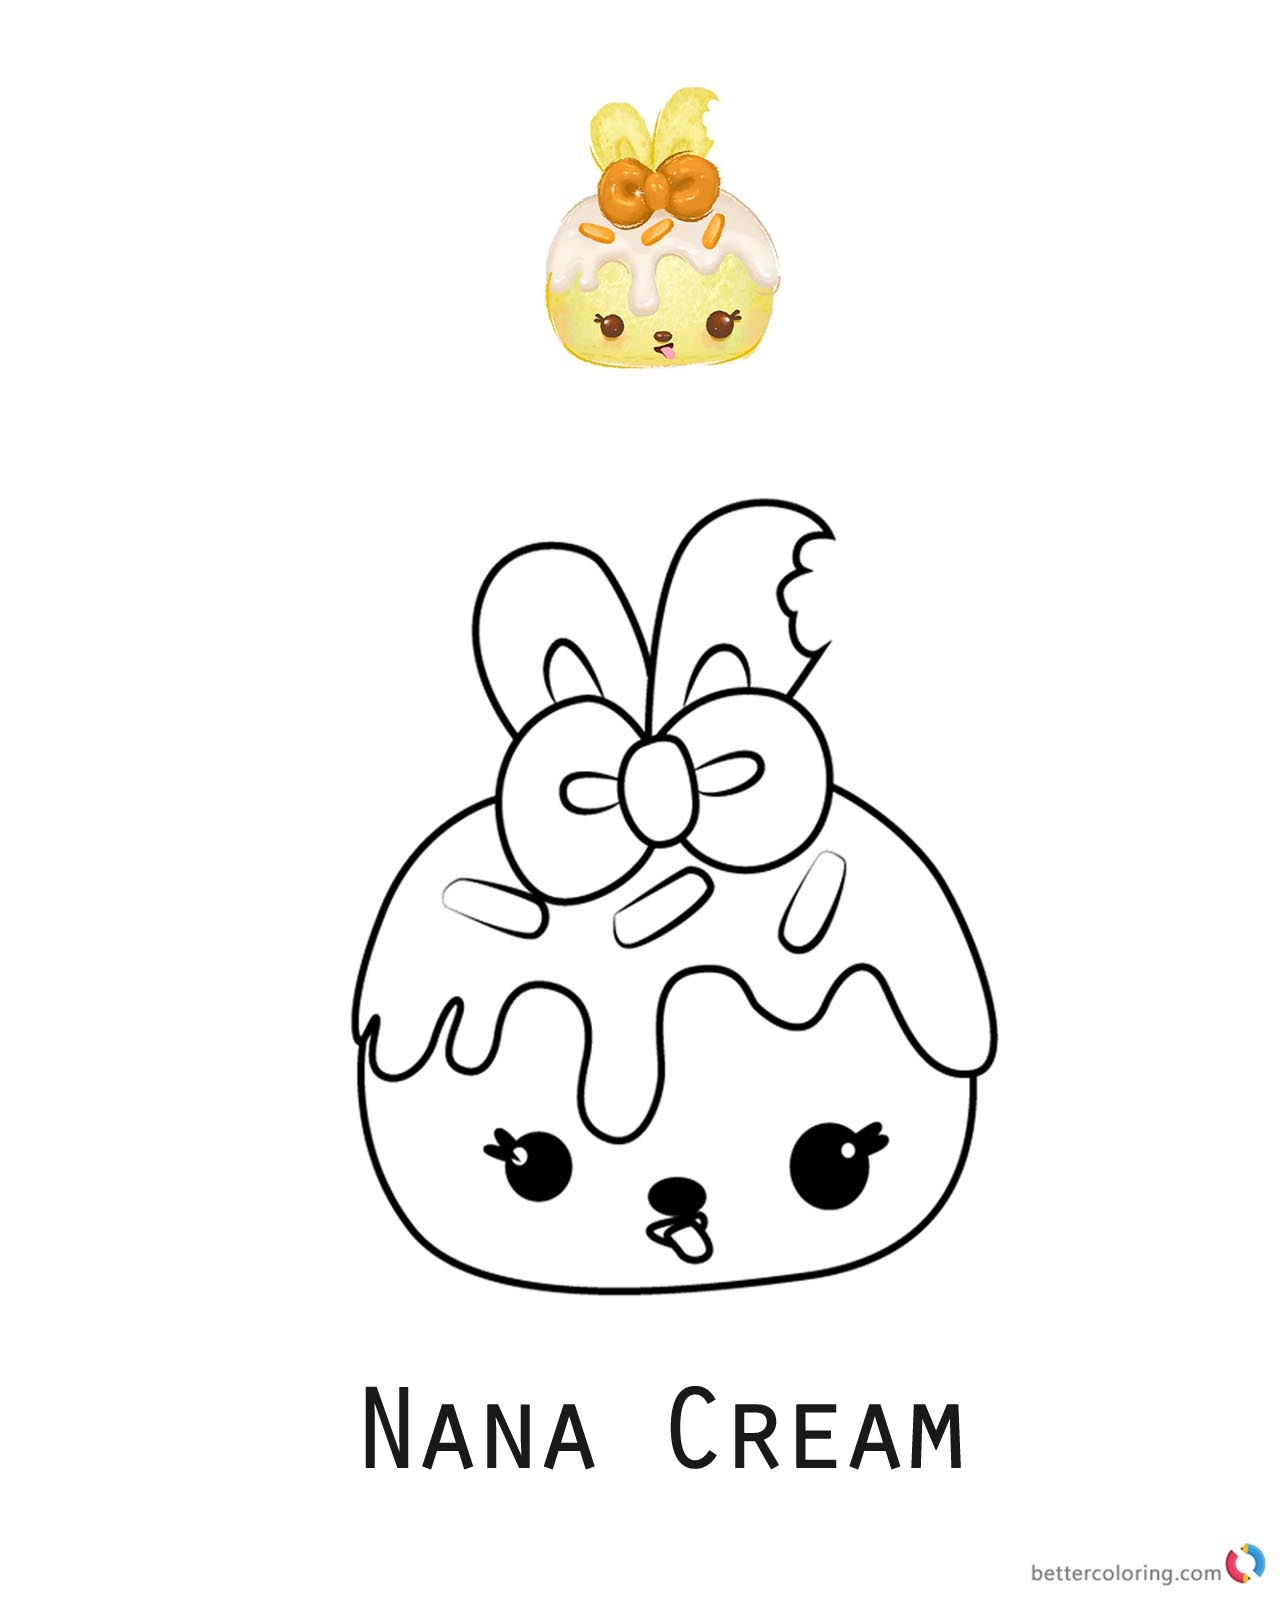 Nana Cream from Num Noms coloring pages printable